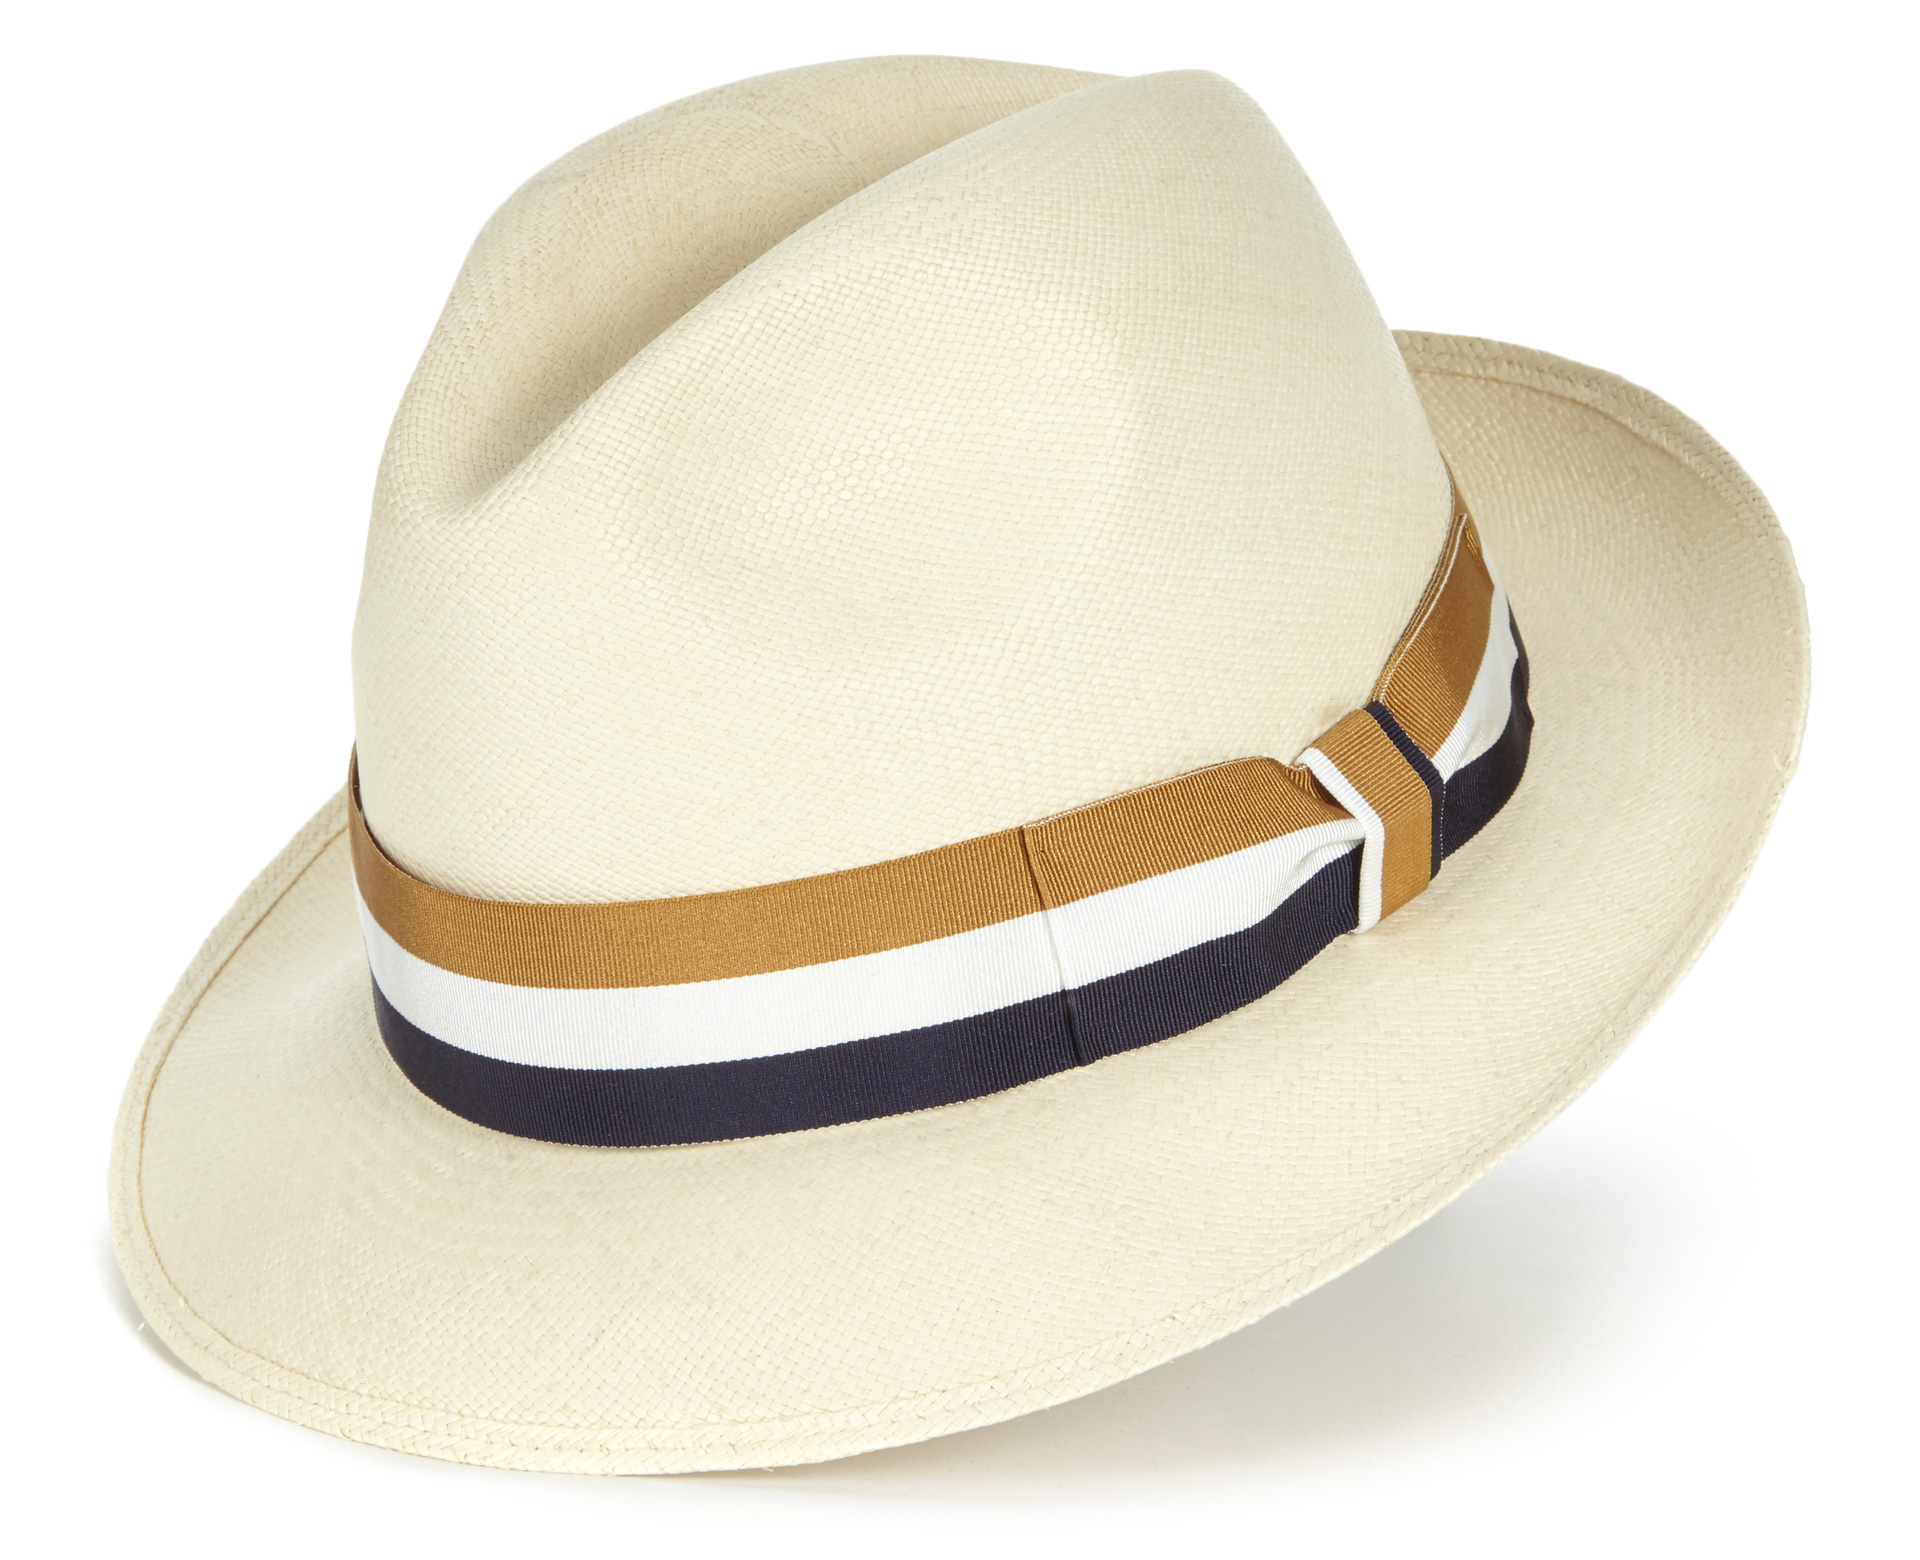 The Lock & Co Panama Hat for QEST